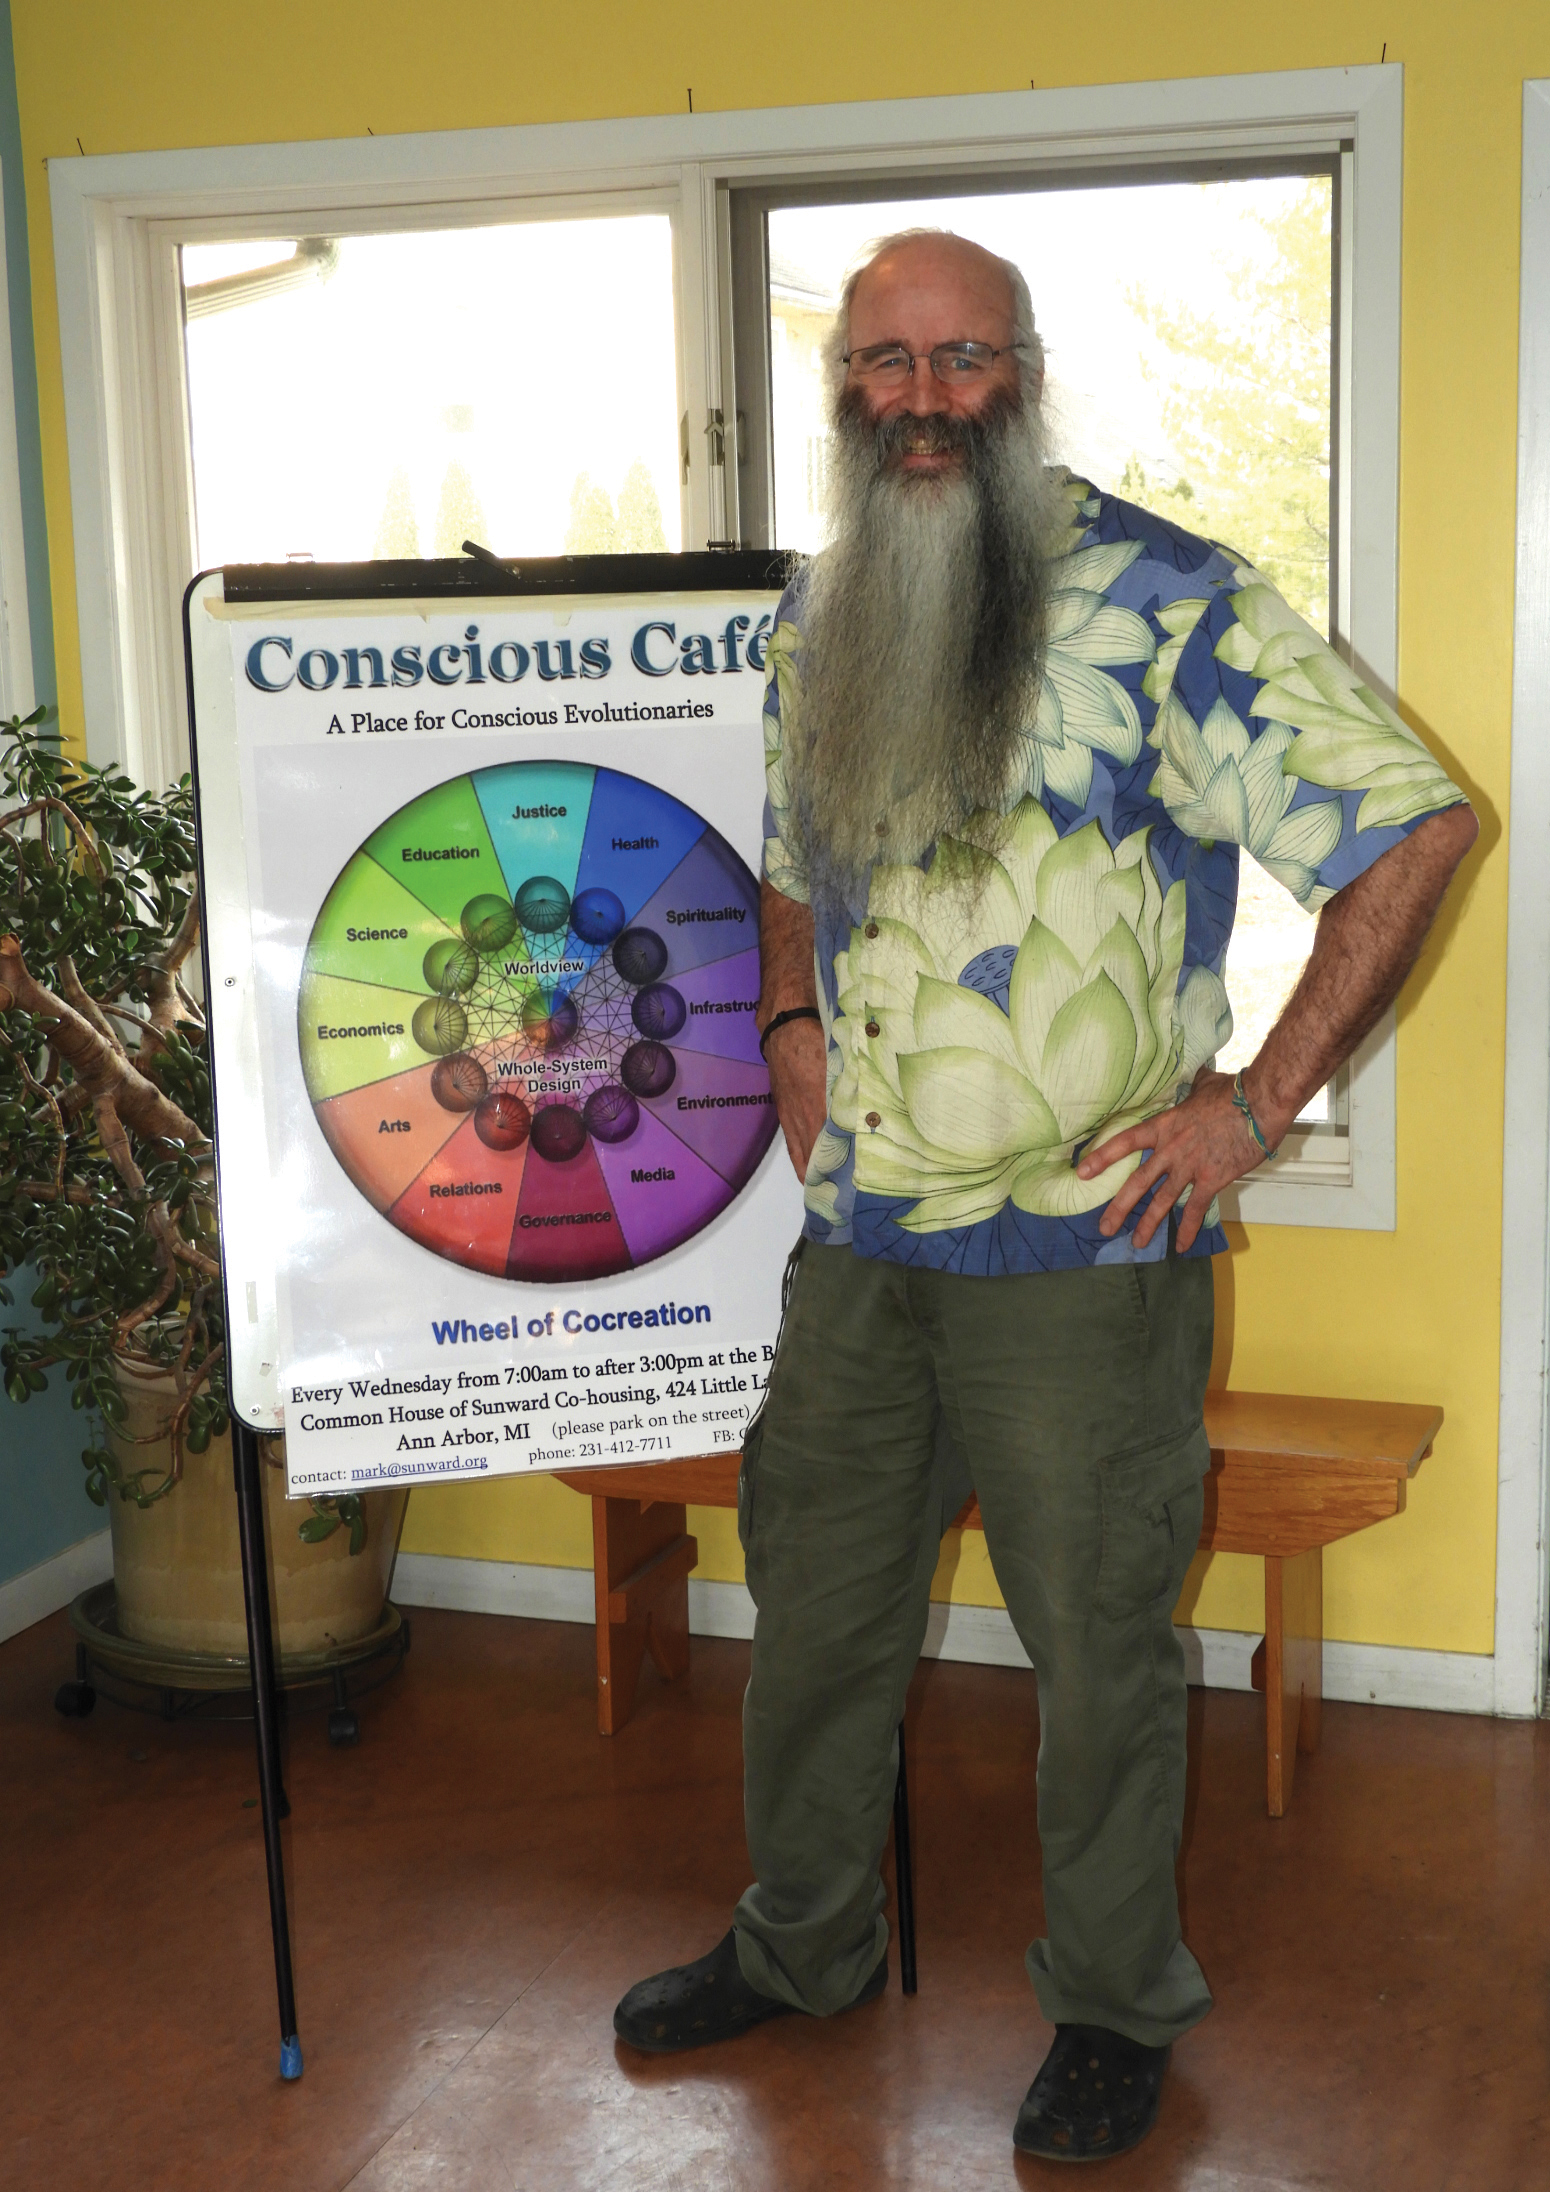 Mark Wagnon from the Conscious Cafe.